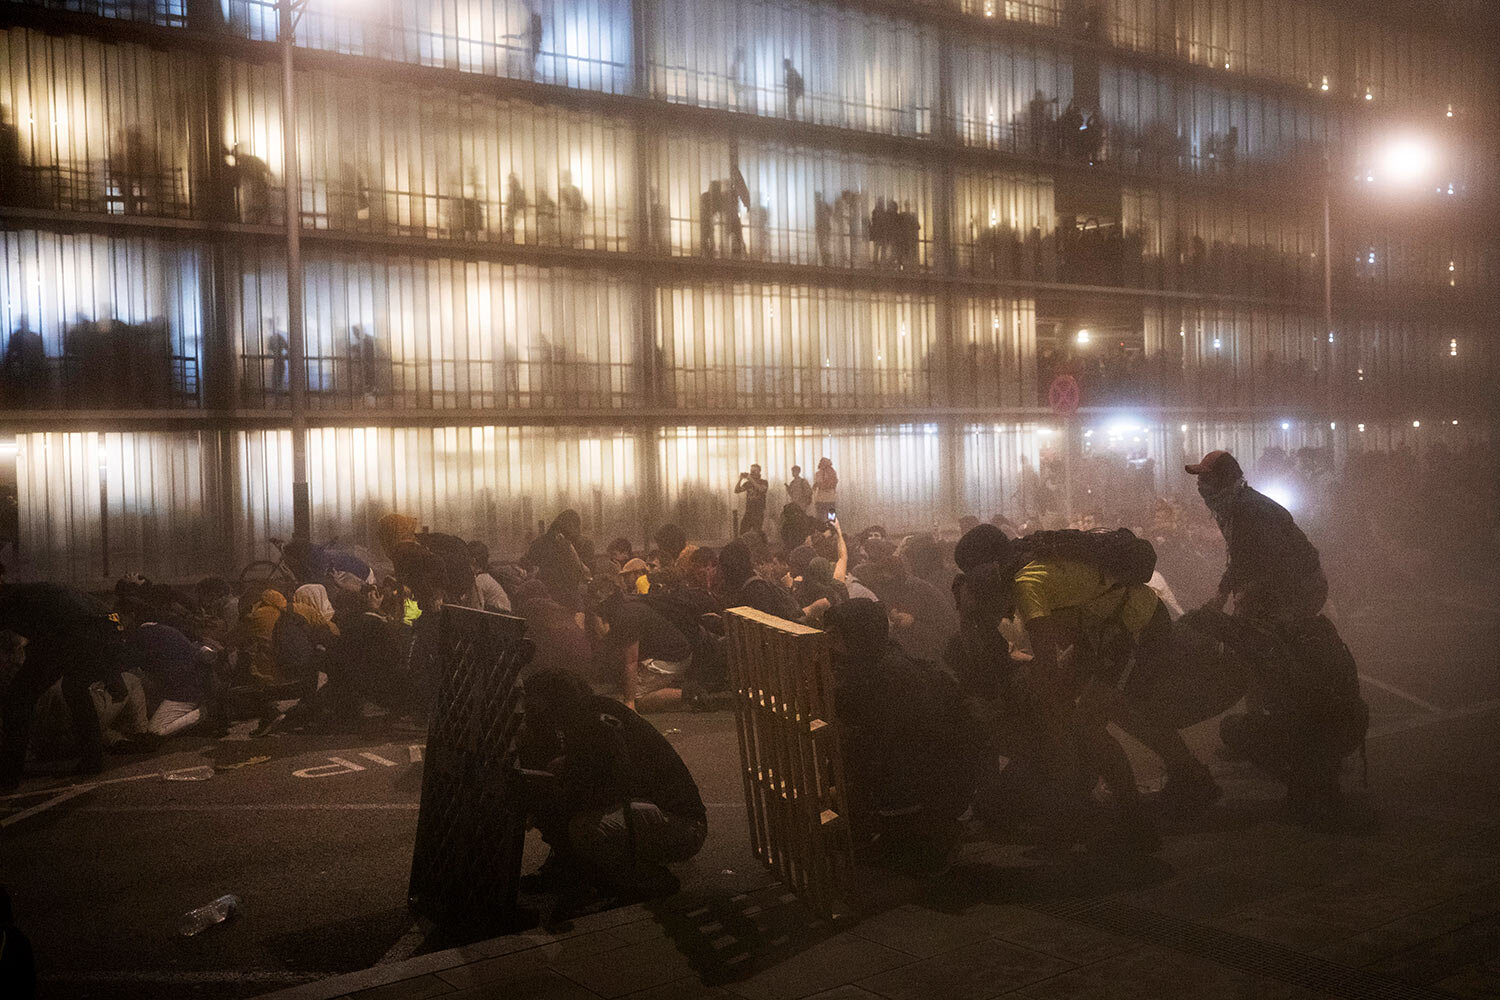 Protesters make a barricade during clashes with police outside El Prat airport in Barcelona, Spain, Monday, Oct. 14, 2019. (AP Photo/Emilio Morenatti)